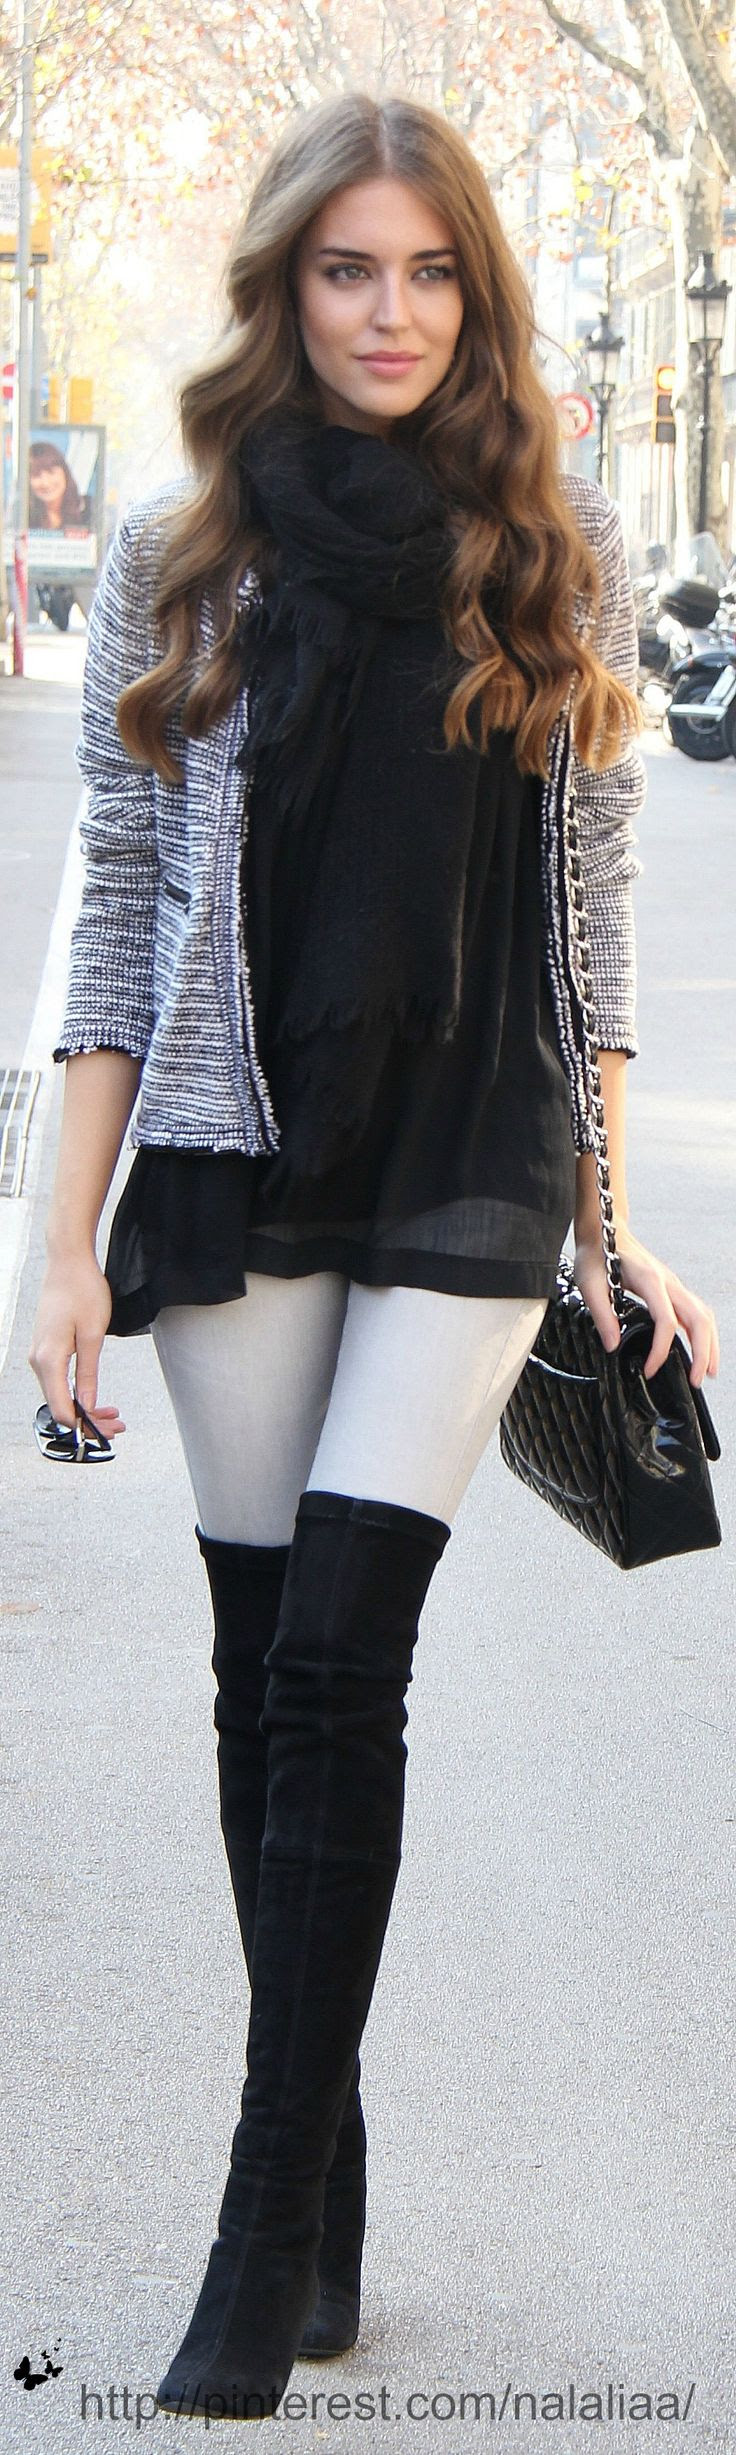 Clara Alonso - totally going to be my fall/winter look